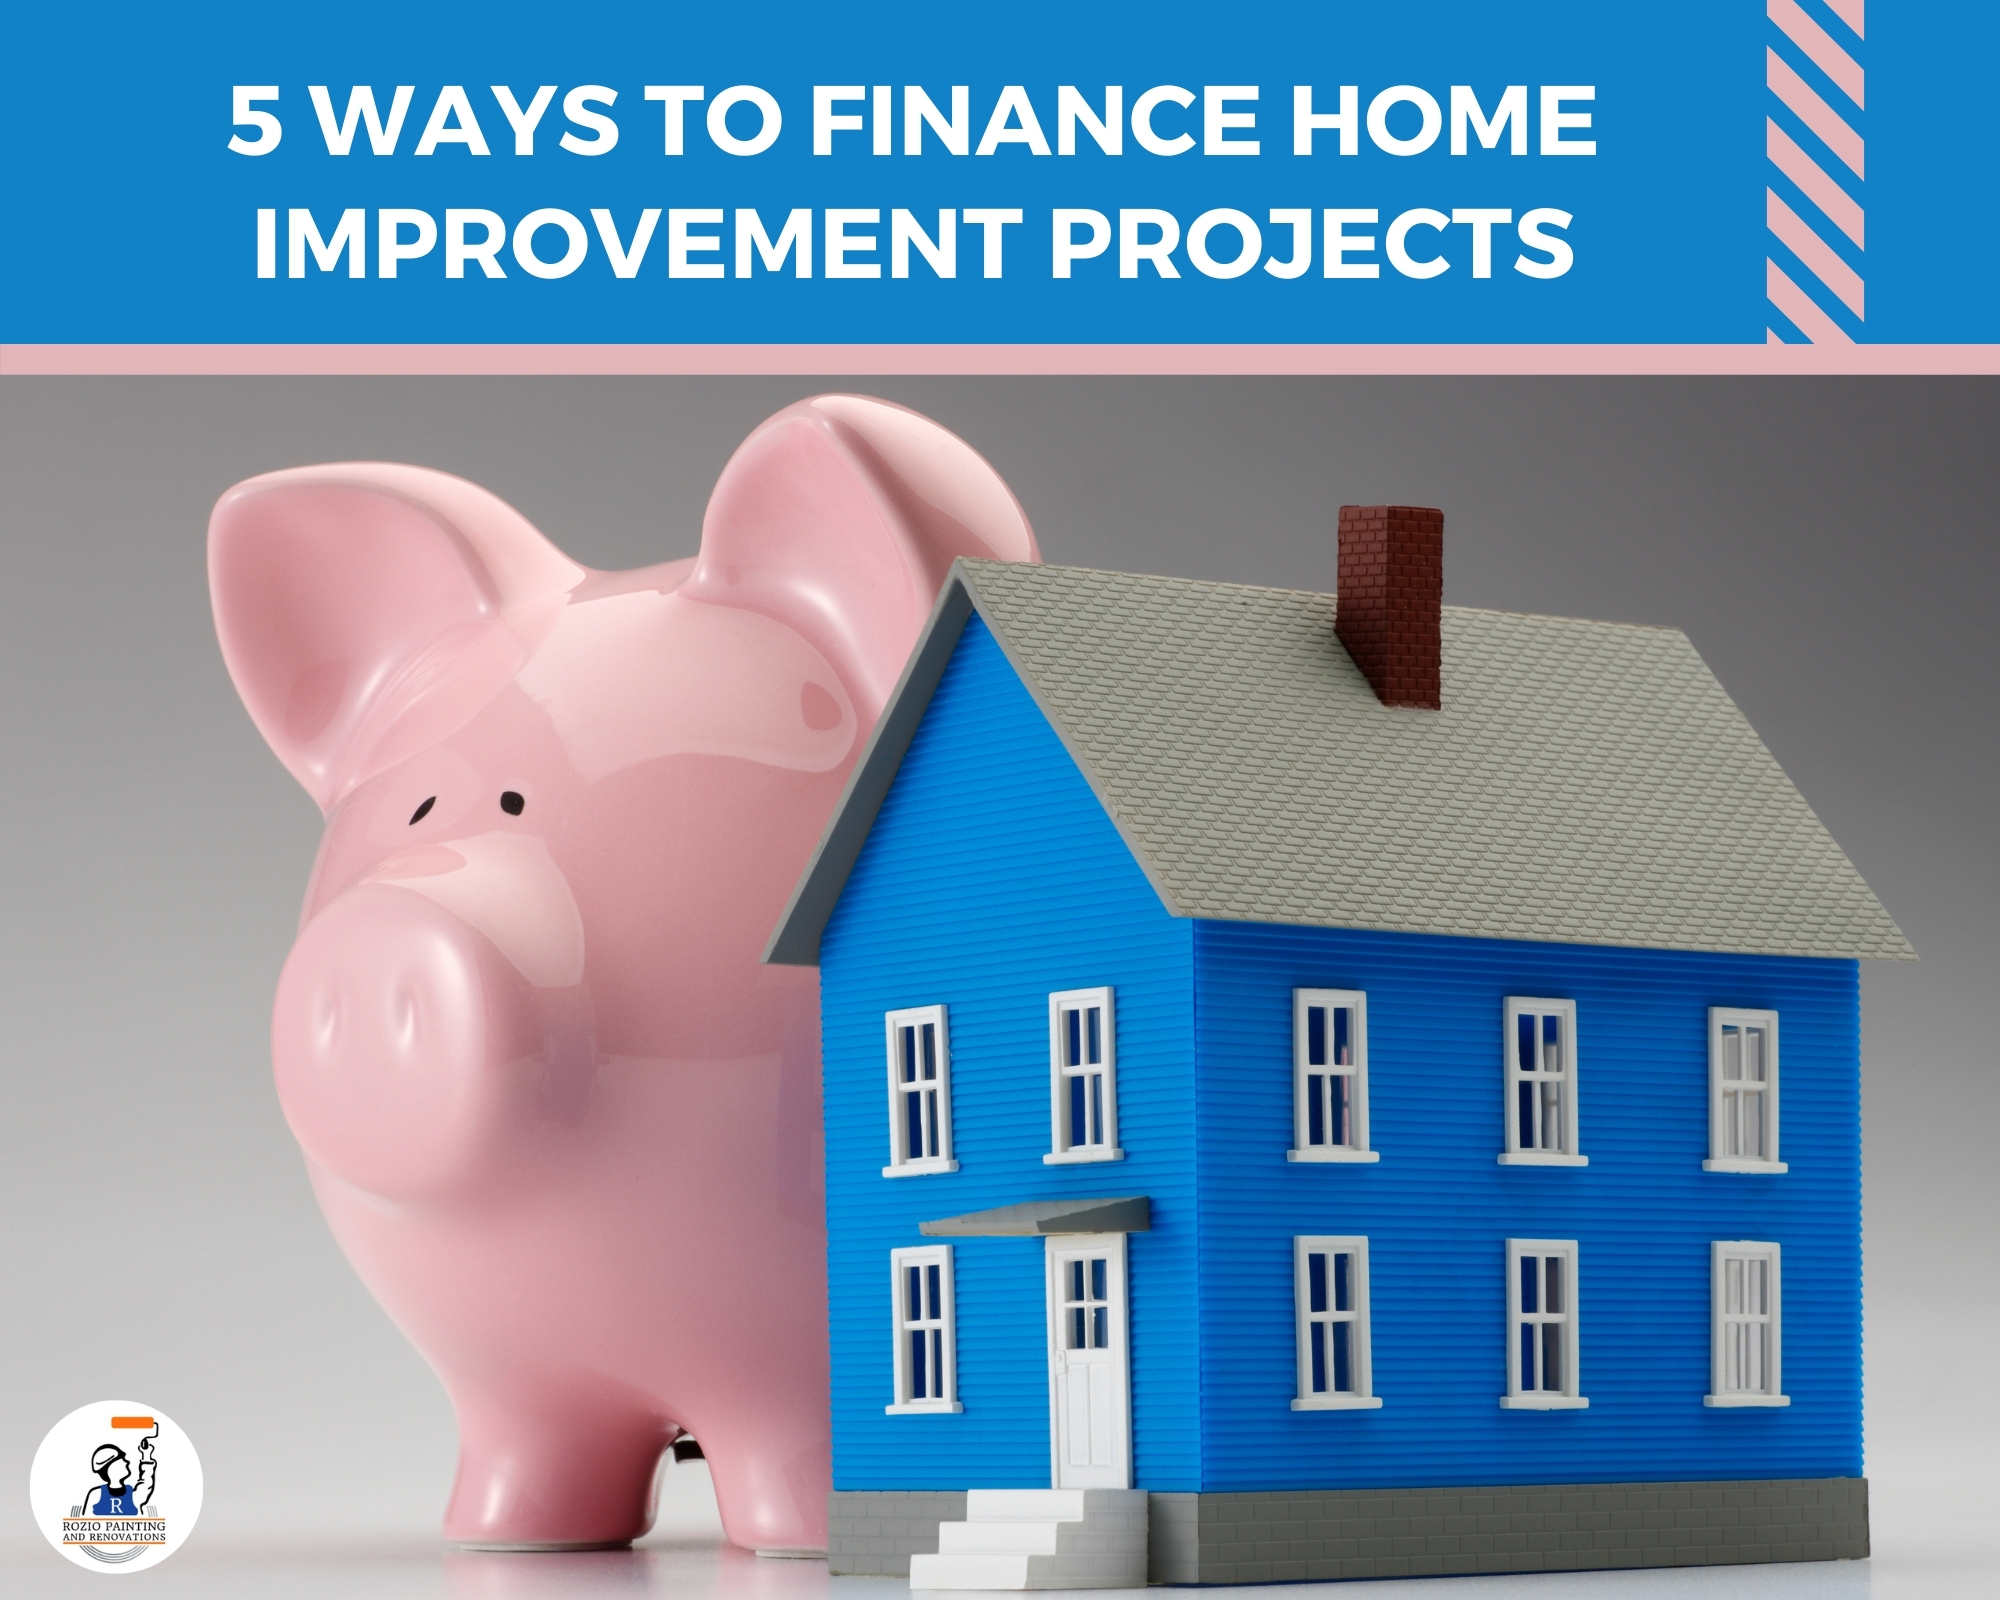 5 Ways to Finance Home Improvement Projects